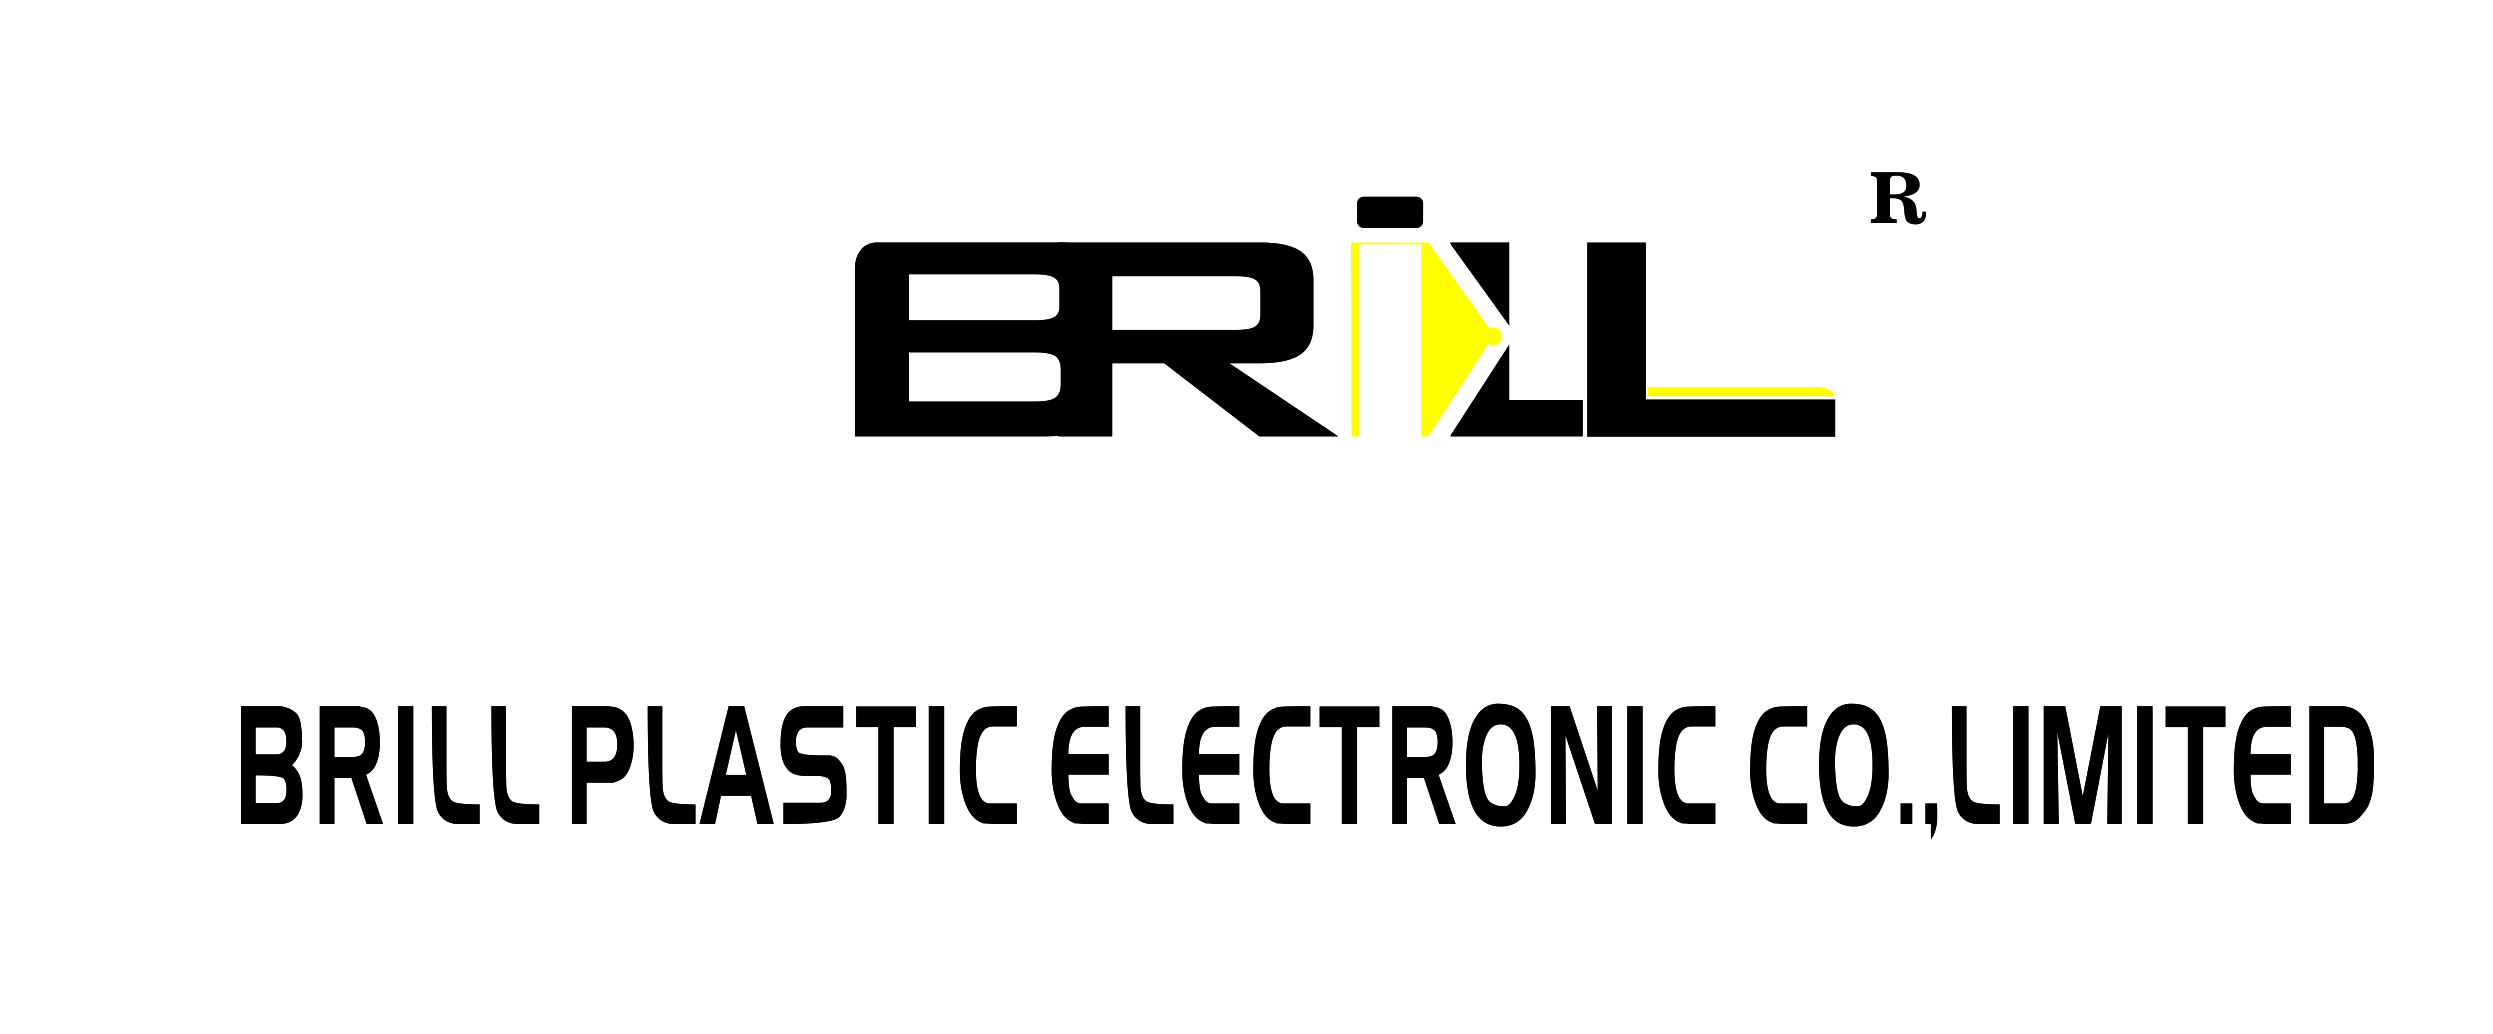 Brill Plastic Electronic Co., Limited logo